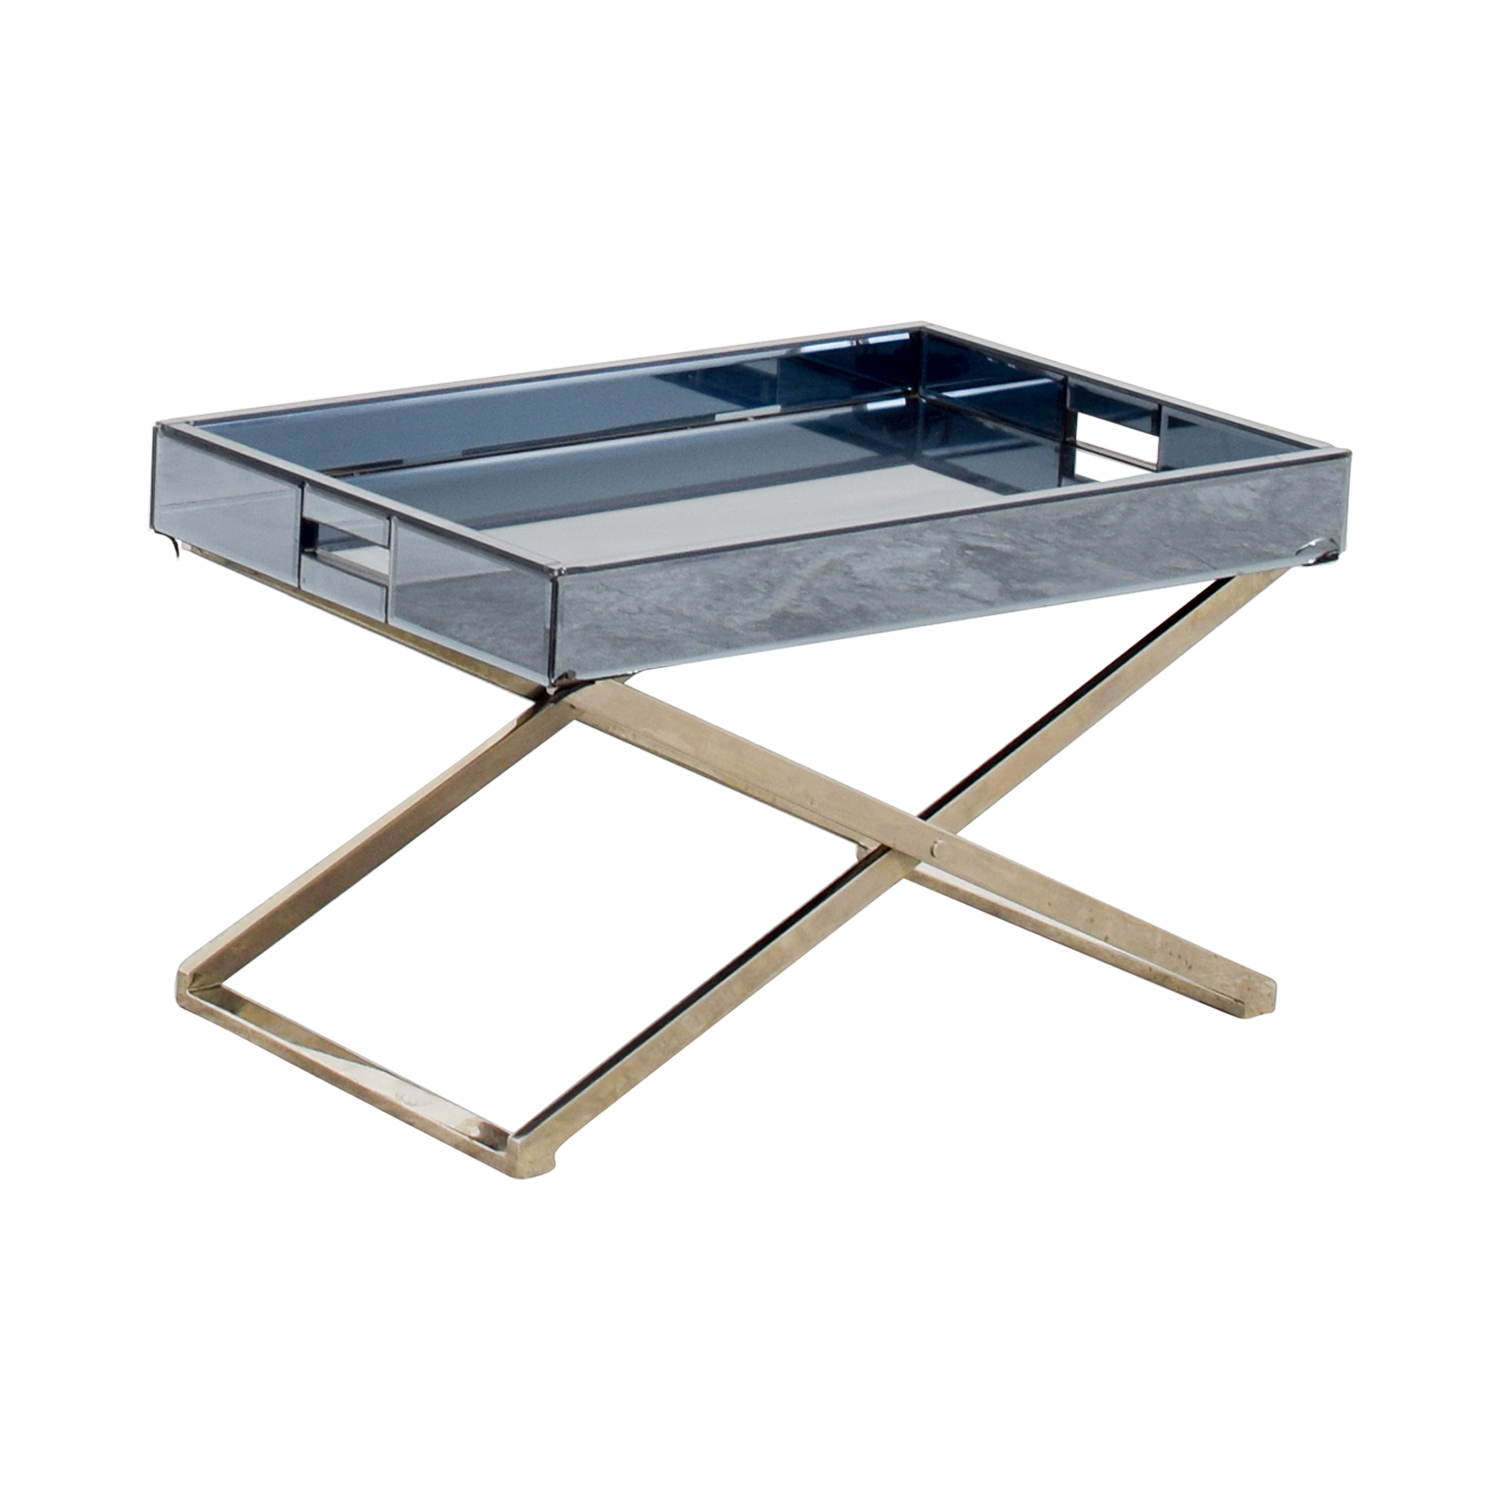 Mirrored Tray For Coffee Table: West Elm West Elm Butler Stand & Mirrored Tray